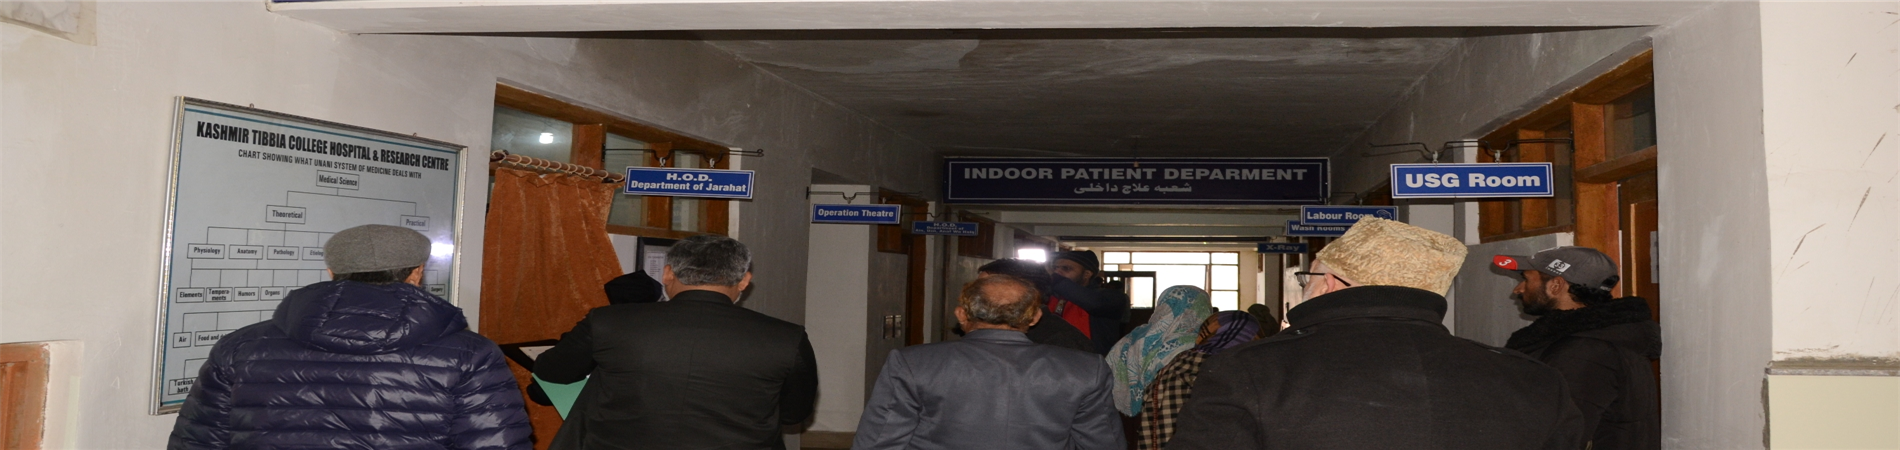 Kashmir Tibbia College, Hospital and Research Centre, Tengpora Image